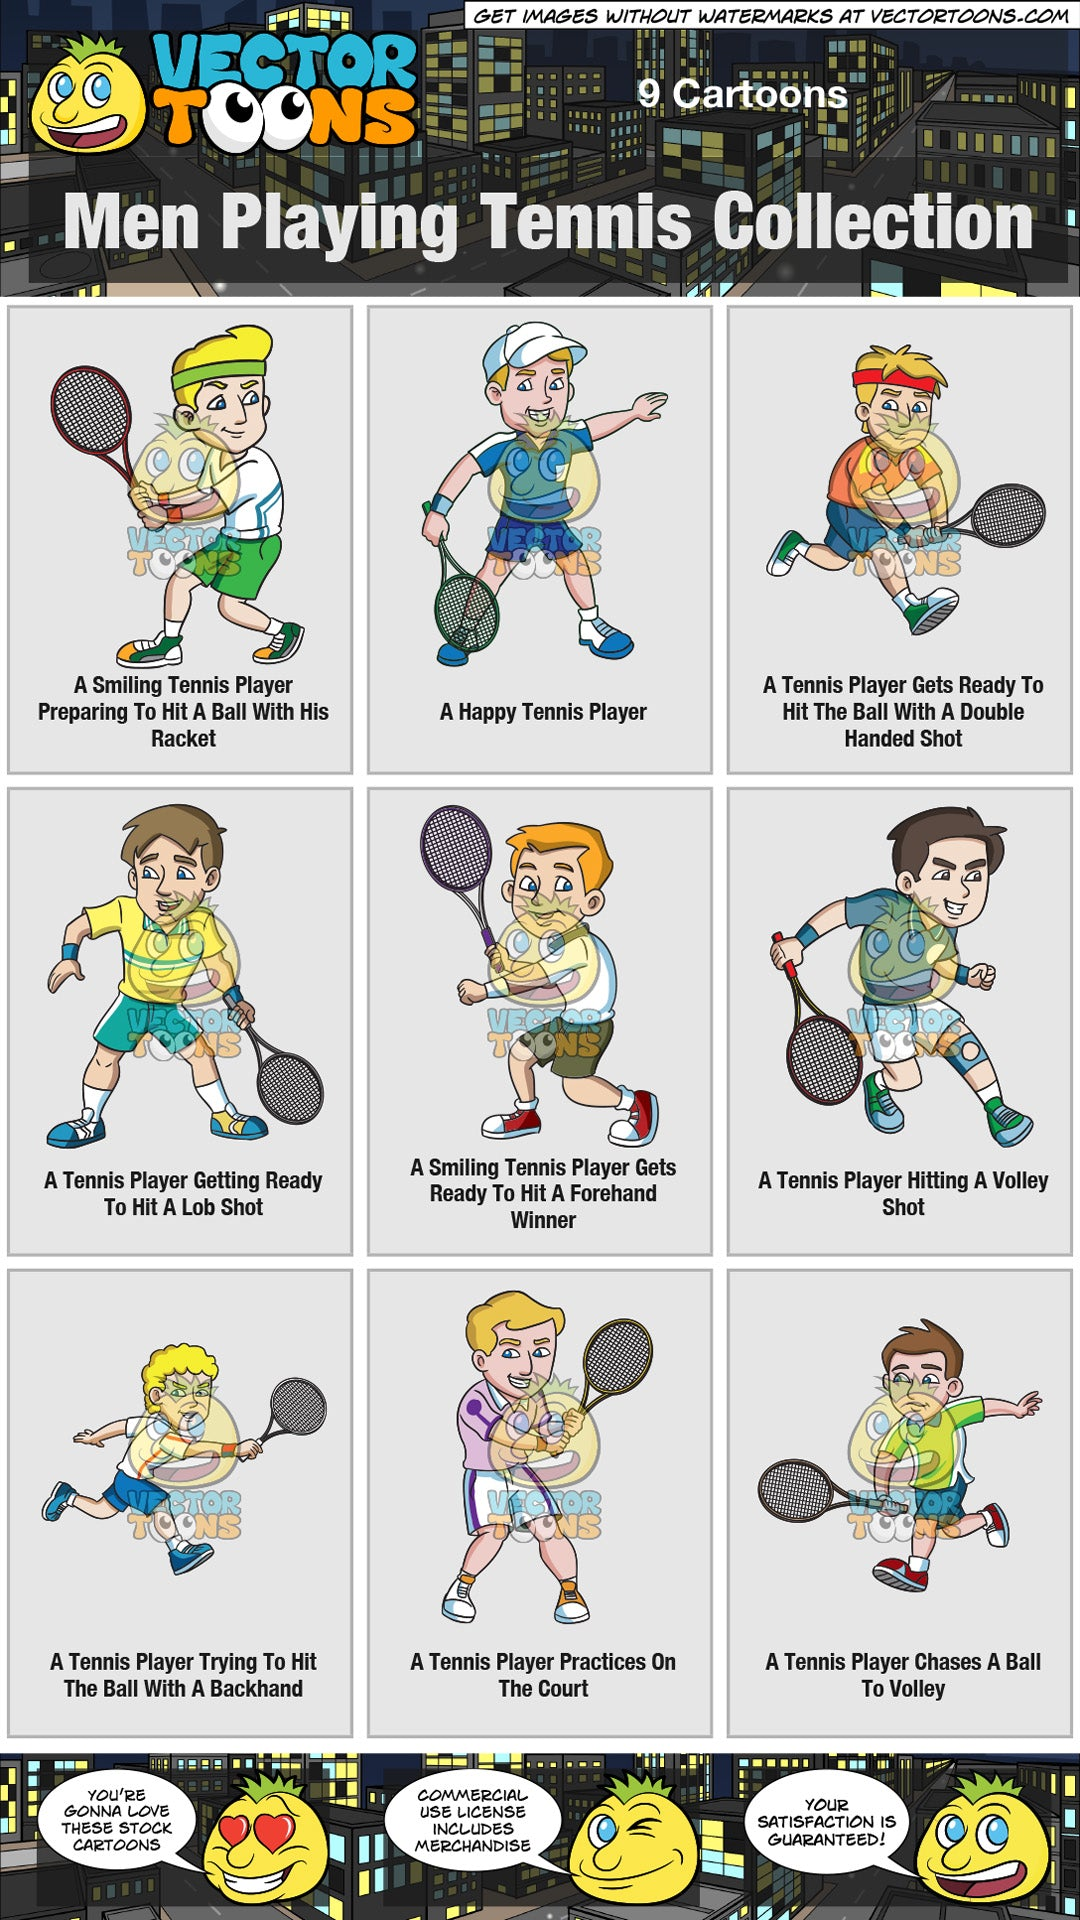 Men Playing Tennis Collection